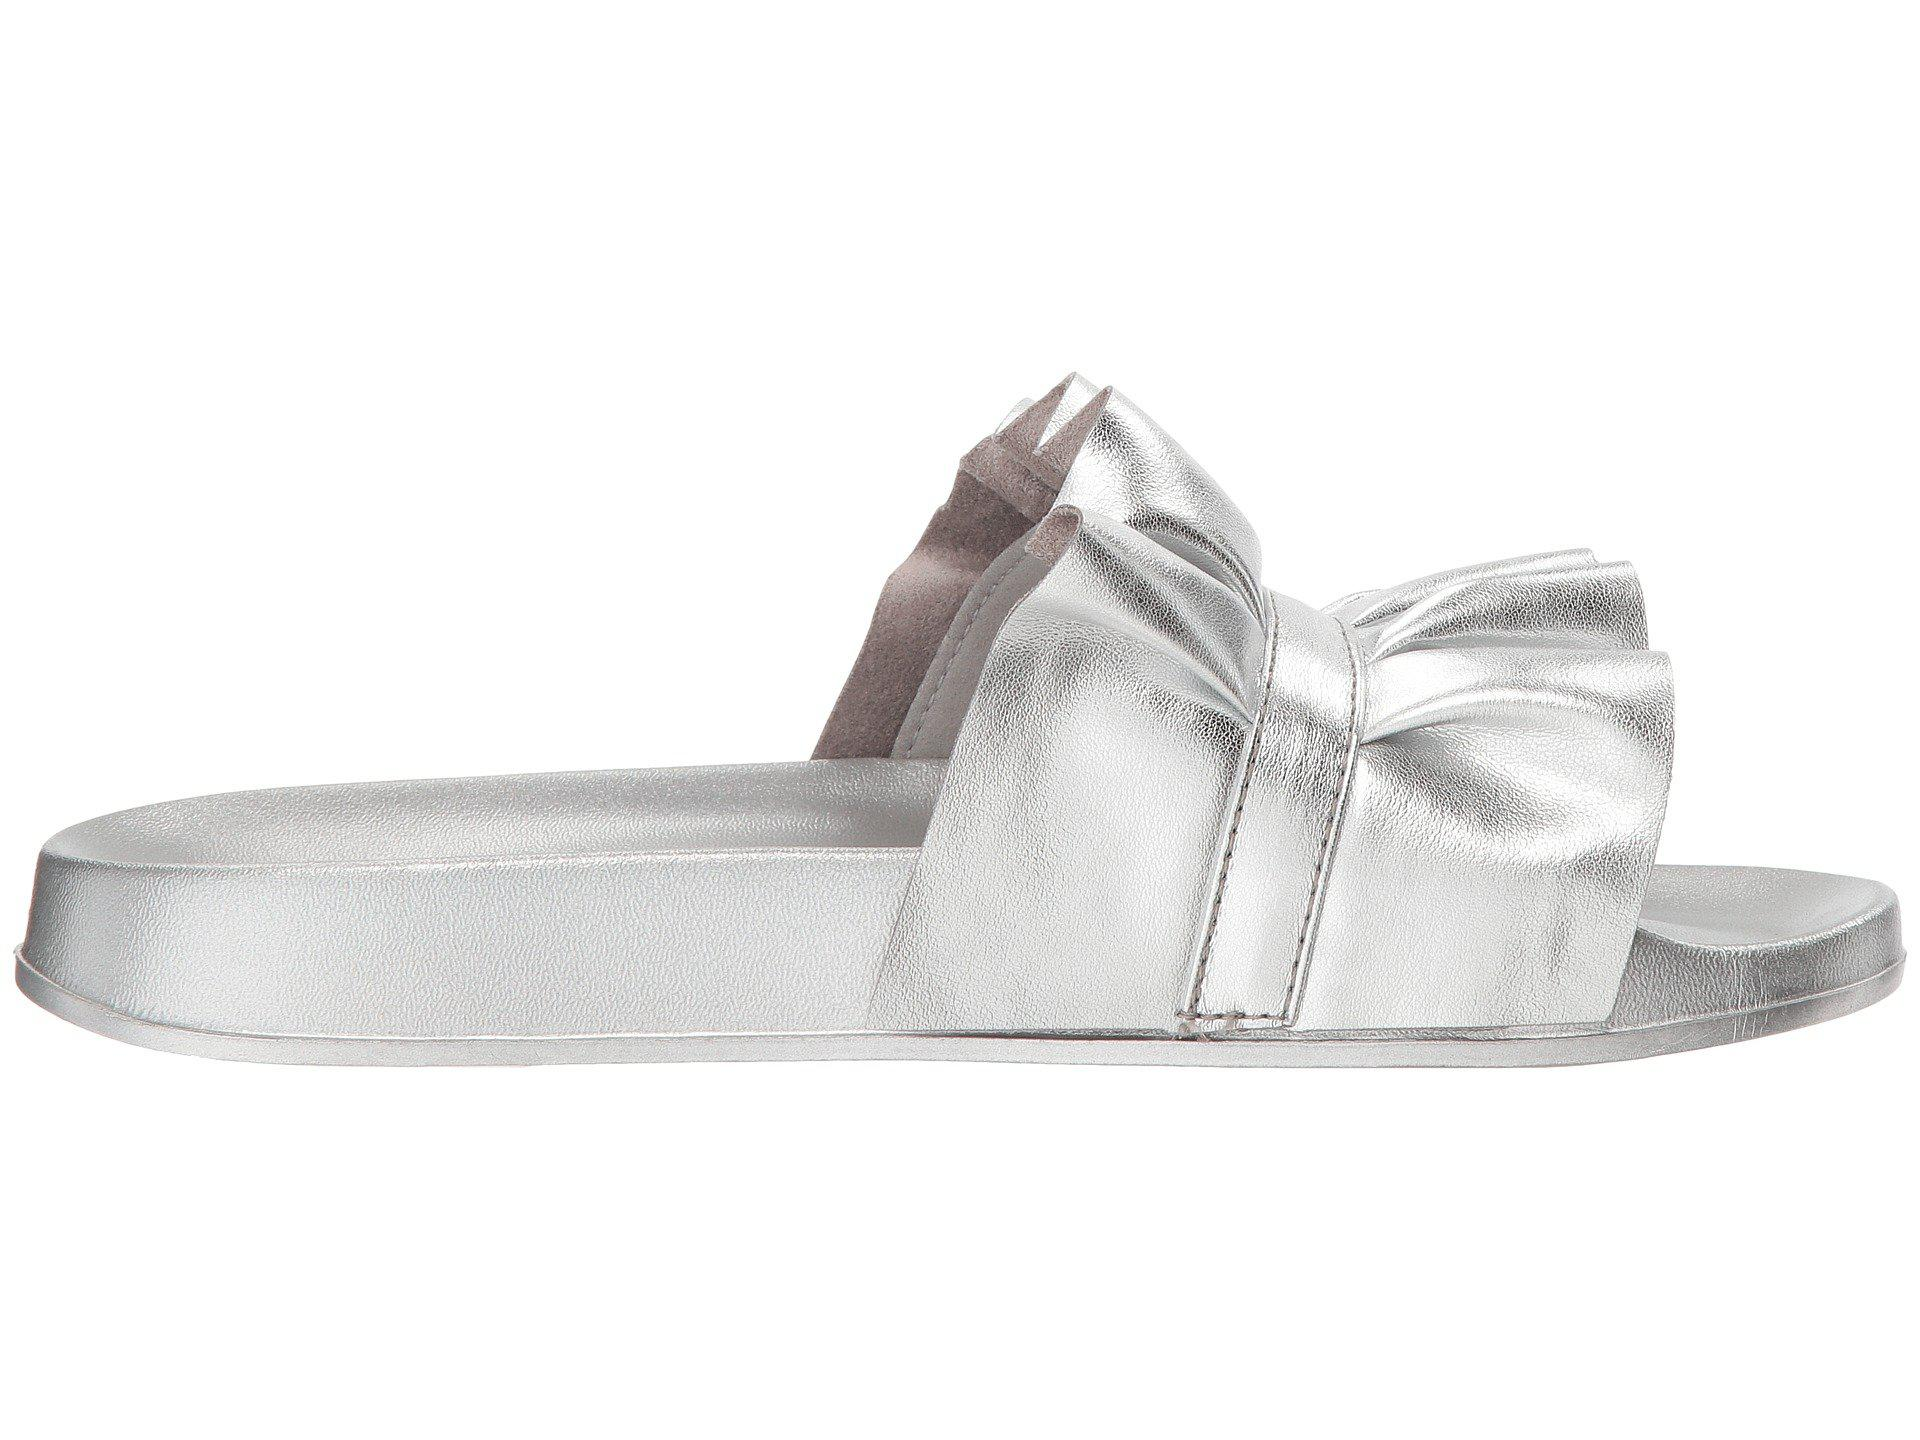 Michael Michael Kors BELLA SLIDE Womens Flat Sandals Metallic Pu 7 ... bf2570b5cc7